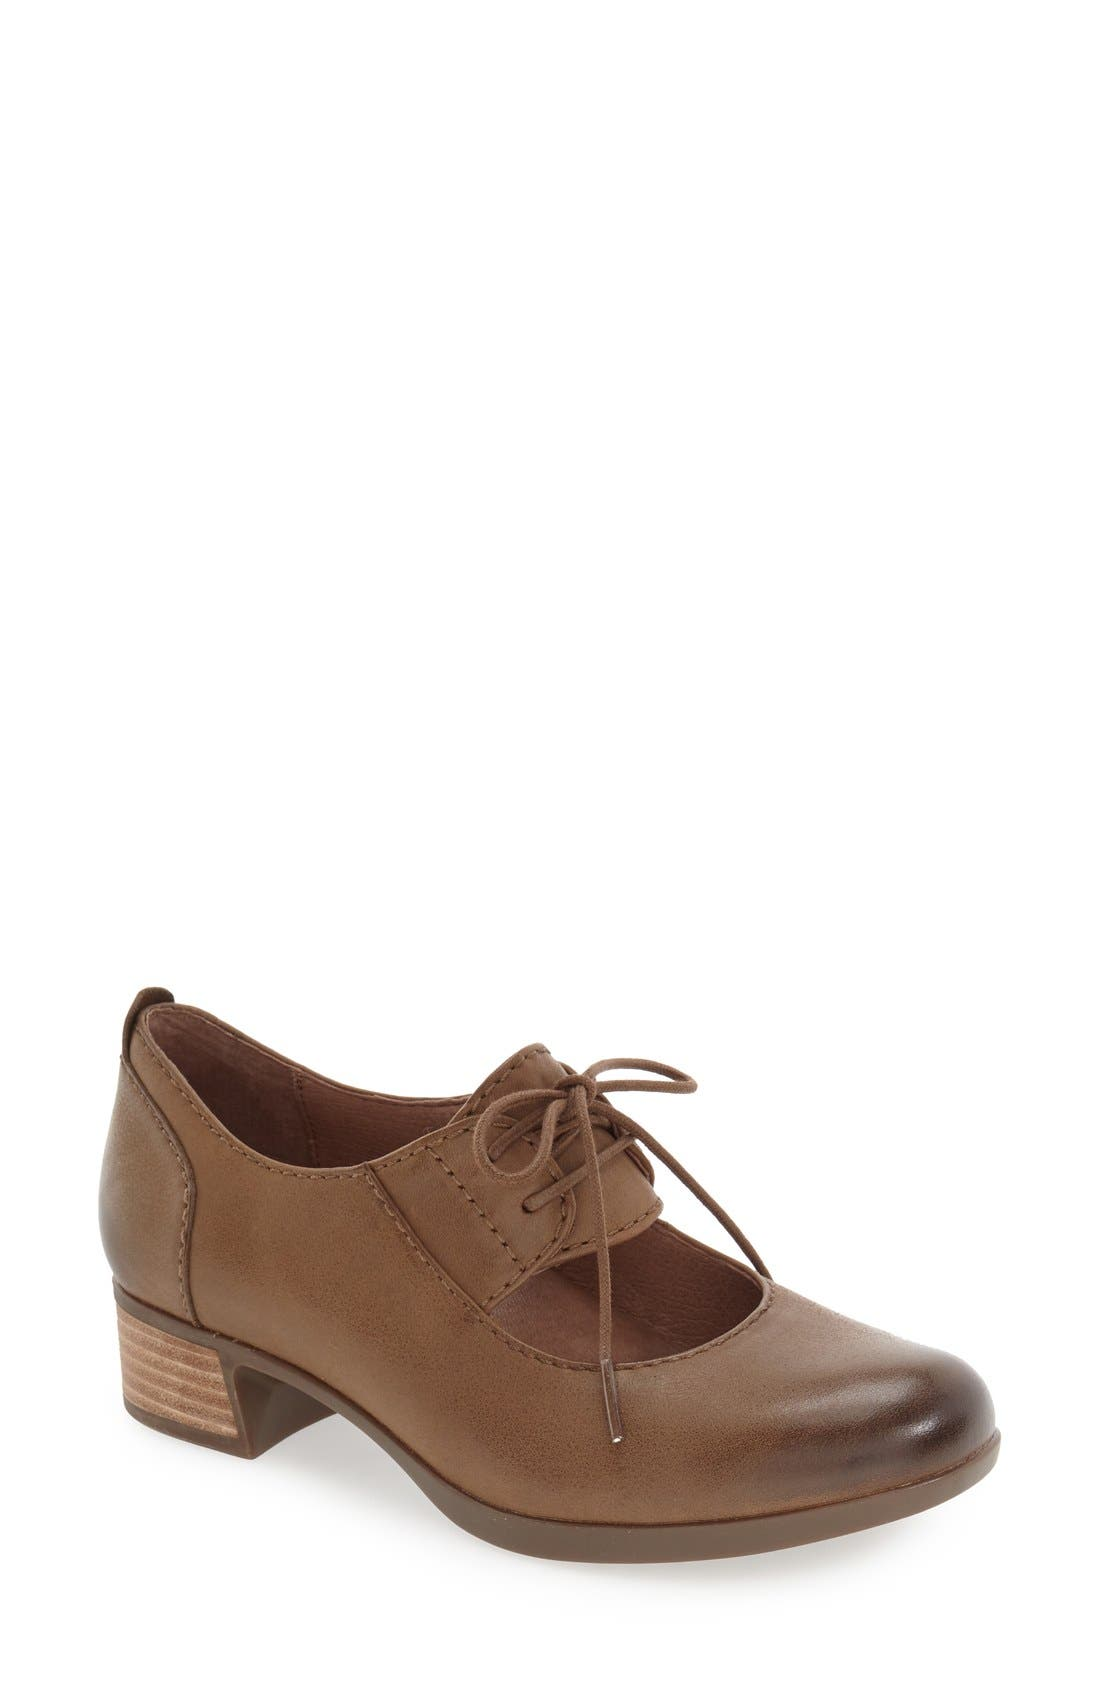 'Linda' Lace-Up Pump,                             Main thumbnail 1, color,                             Taupe Burnished Leather